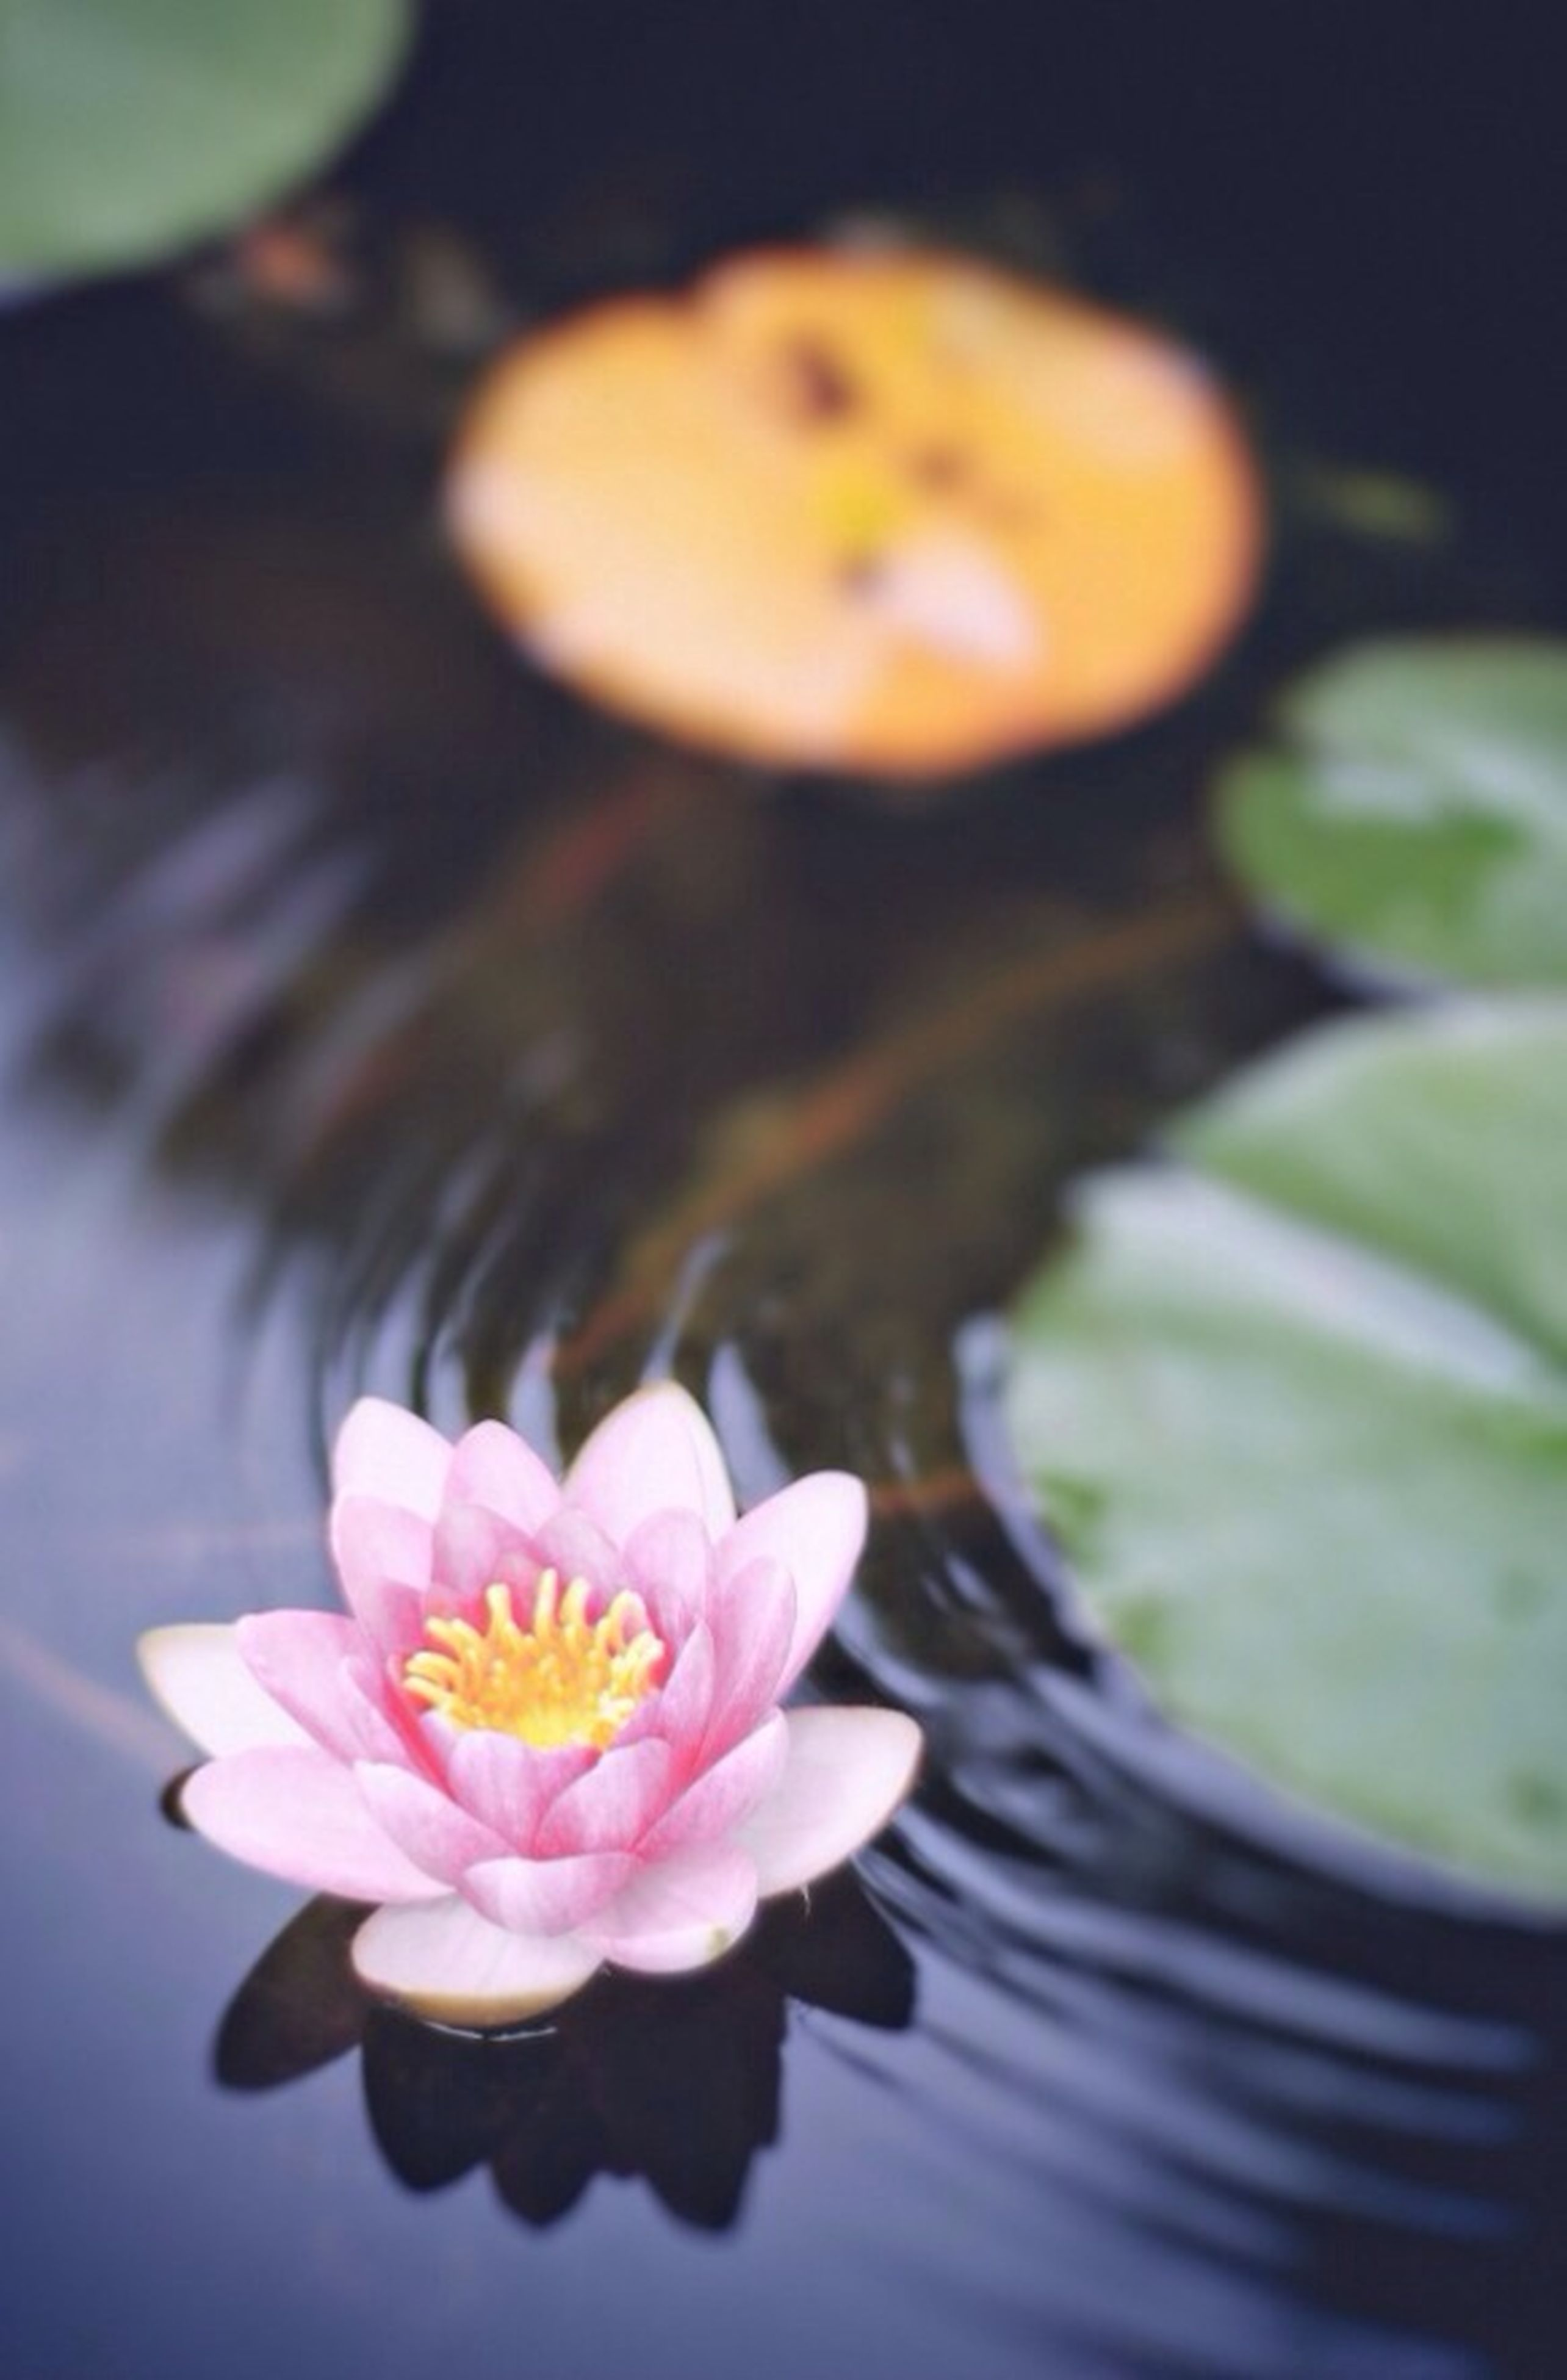 flower, petal, freshness, flower head, fragility, close-up, beauty in nature, single flower, water lily, growth, nature, high angle view, blooming, indoors, pond, pink color, water, selective focus, focus on foreground, pollen